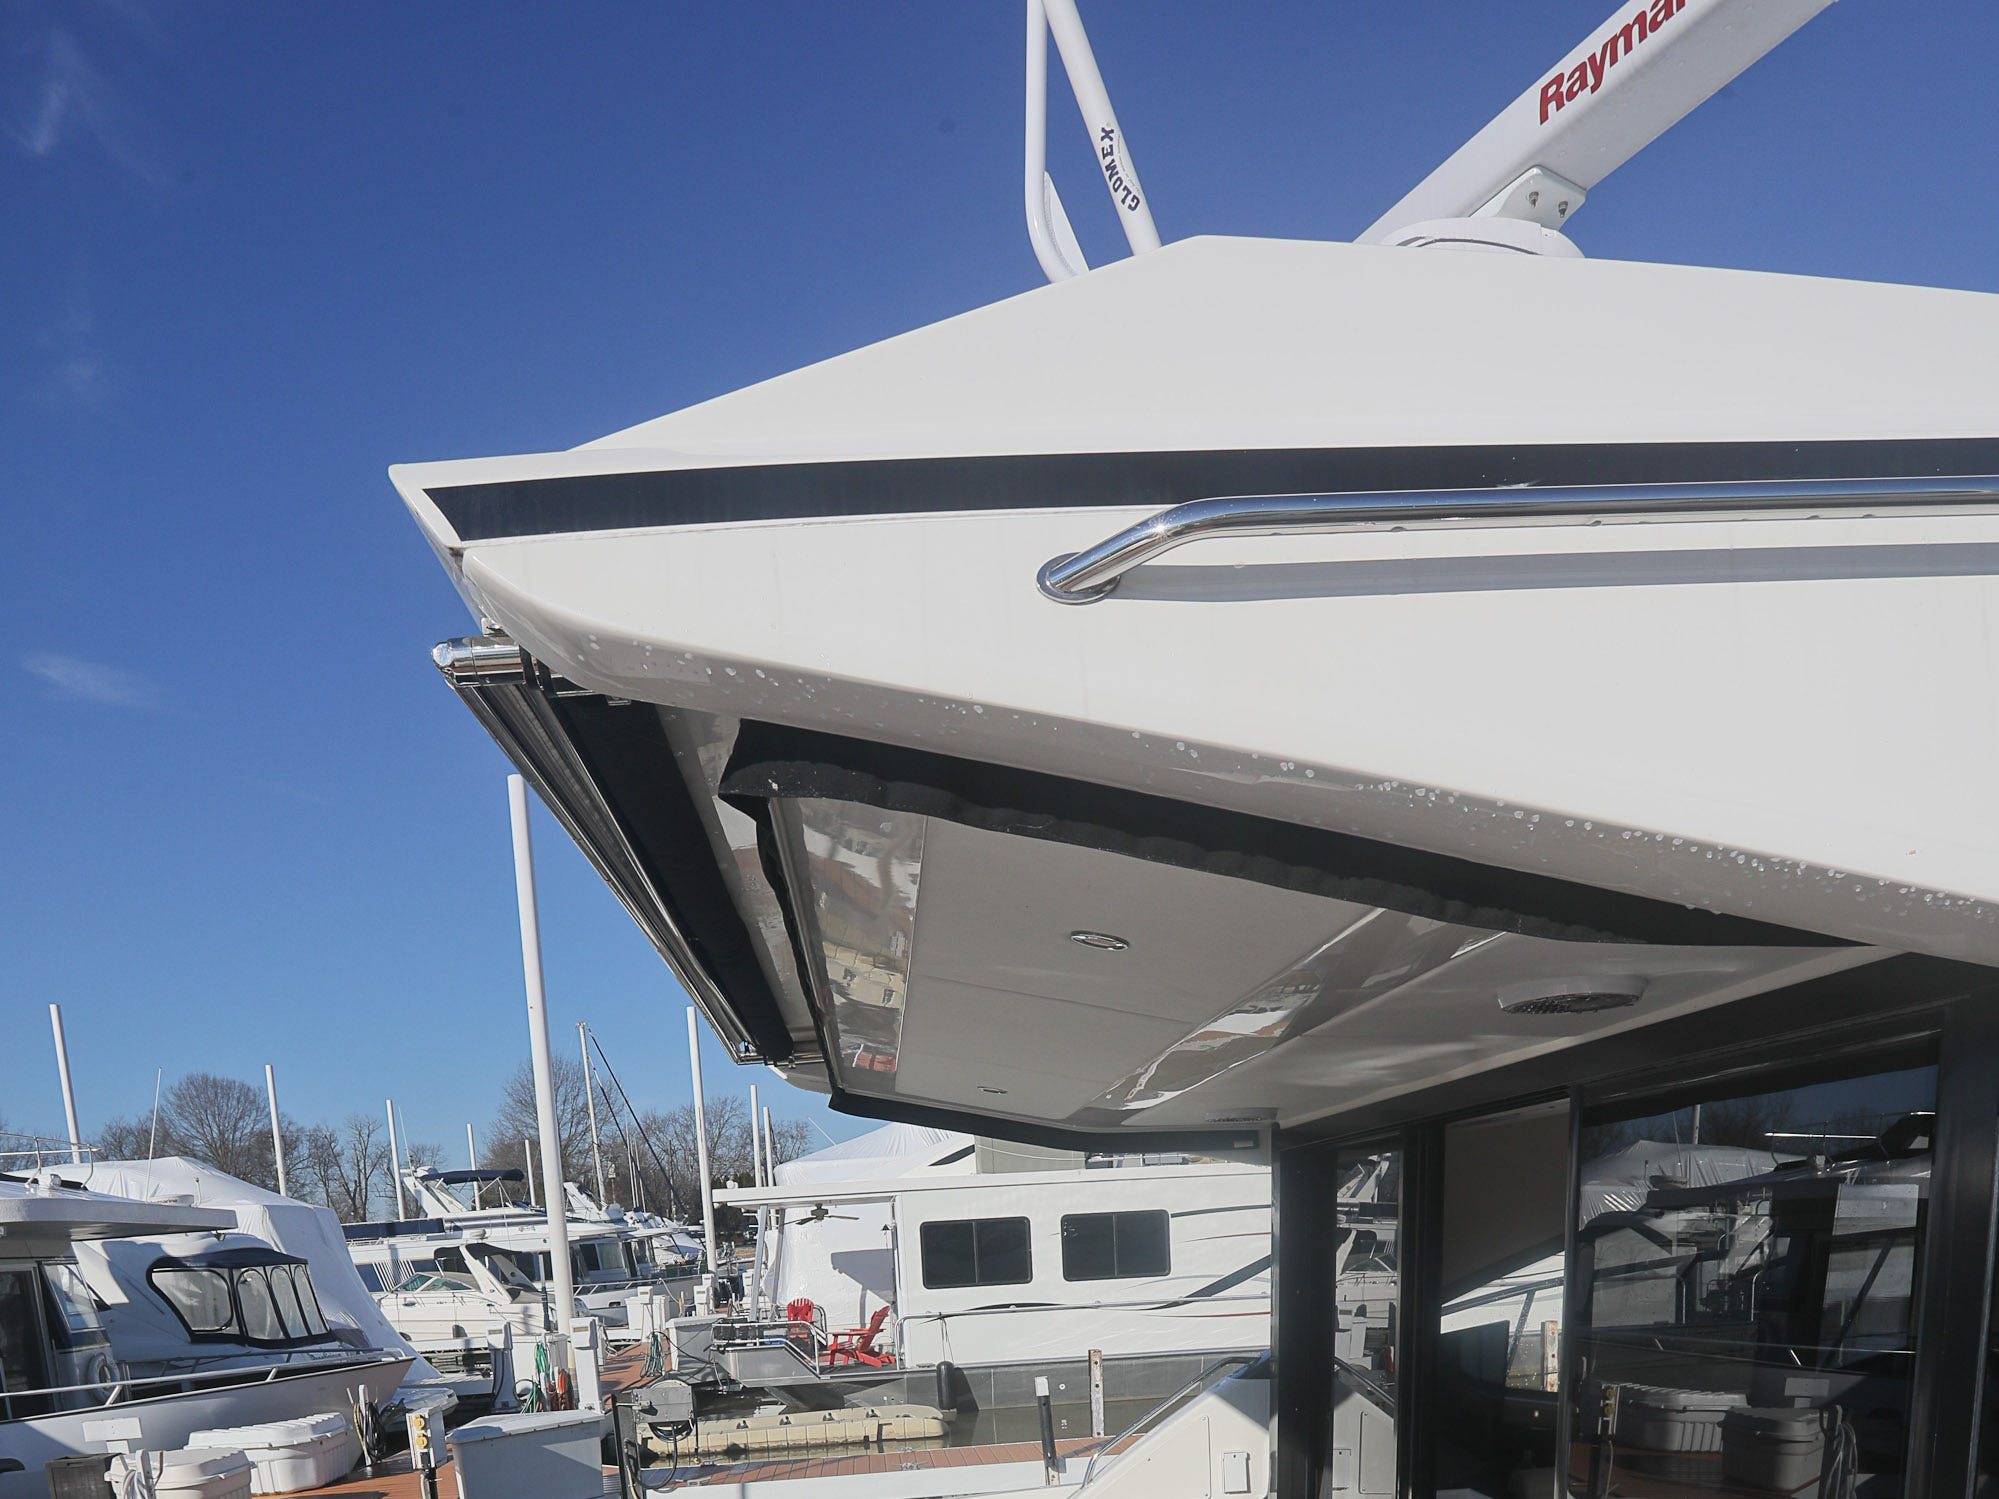 The stern of a 2017 Sea Ray 400 Sundancer at the Captain's Quarters marina in Louisville, KY. Dec. 17, 2018